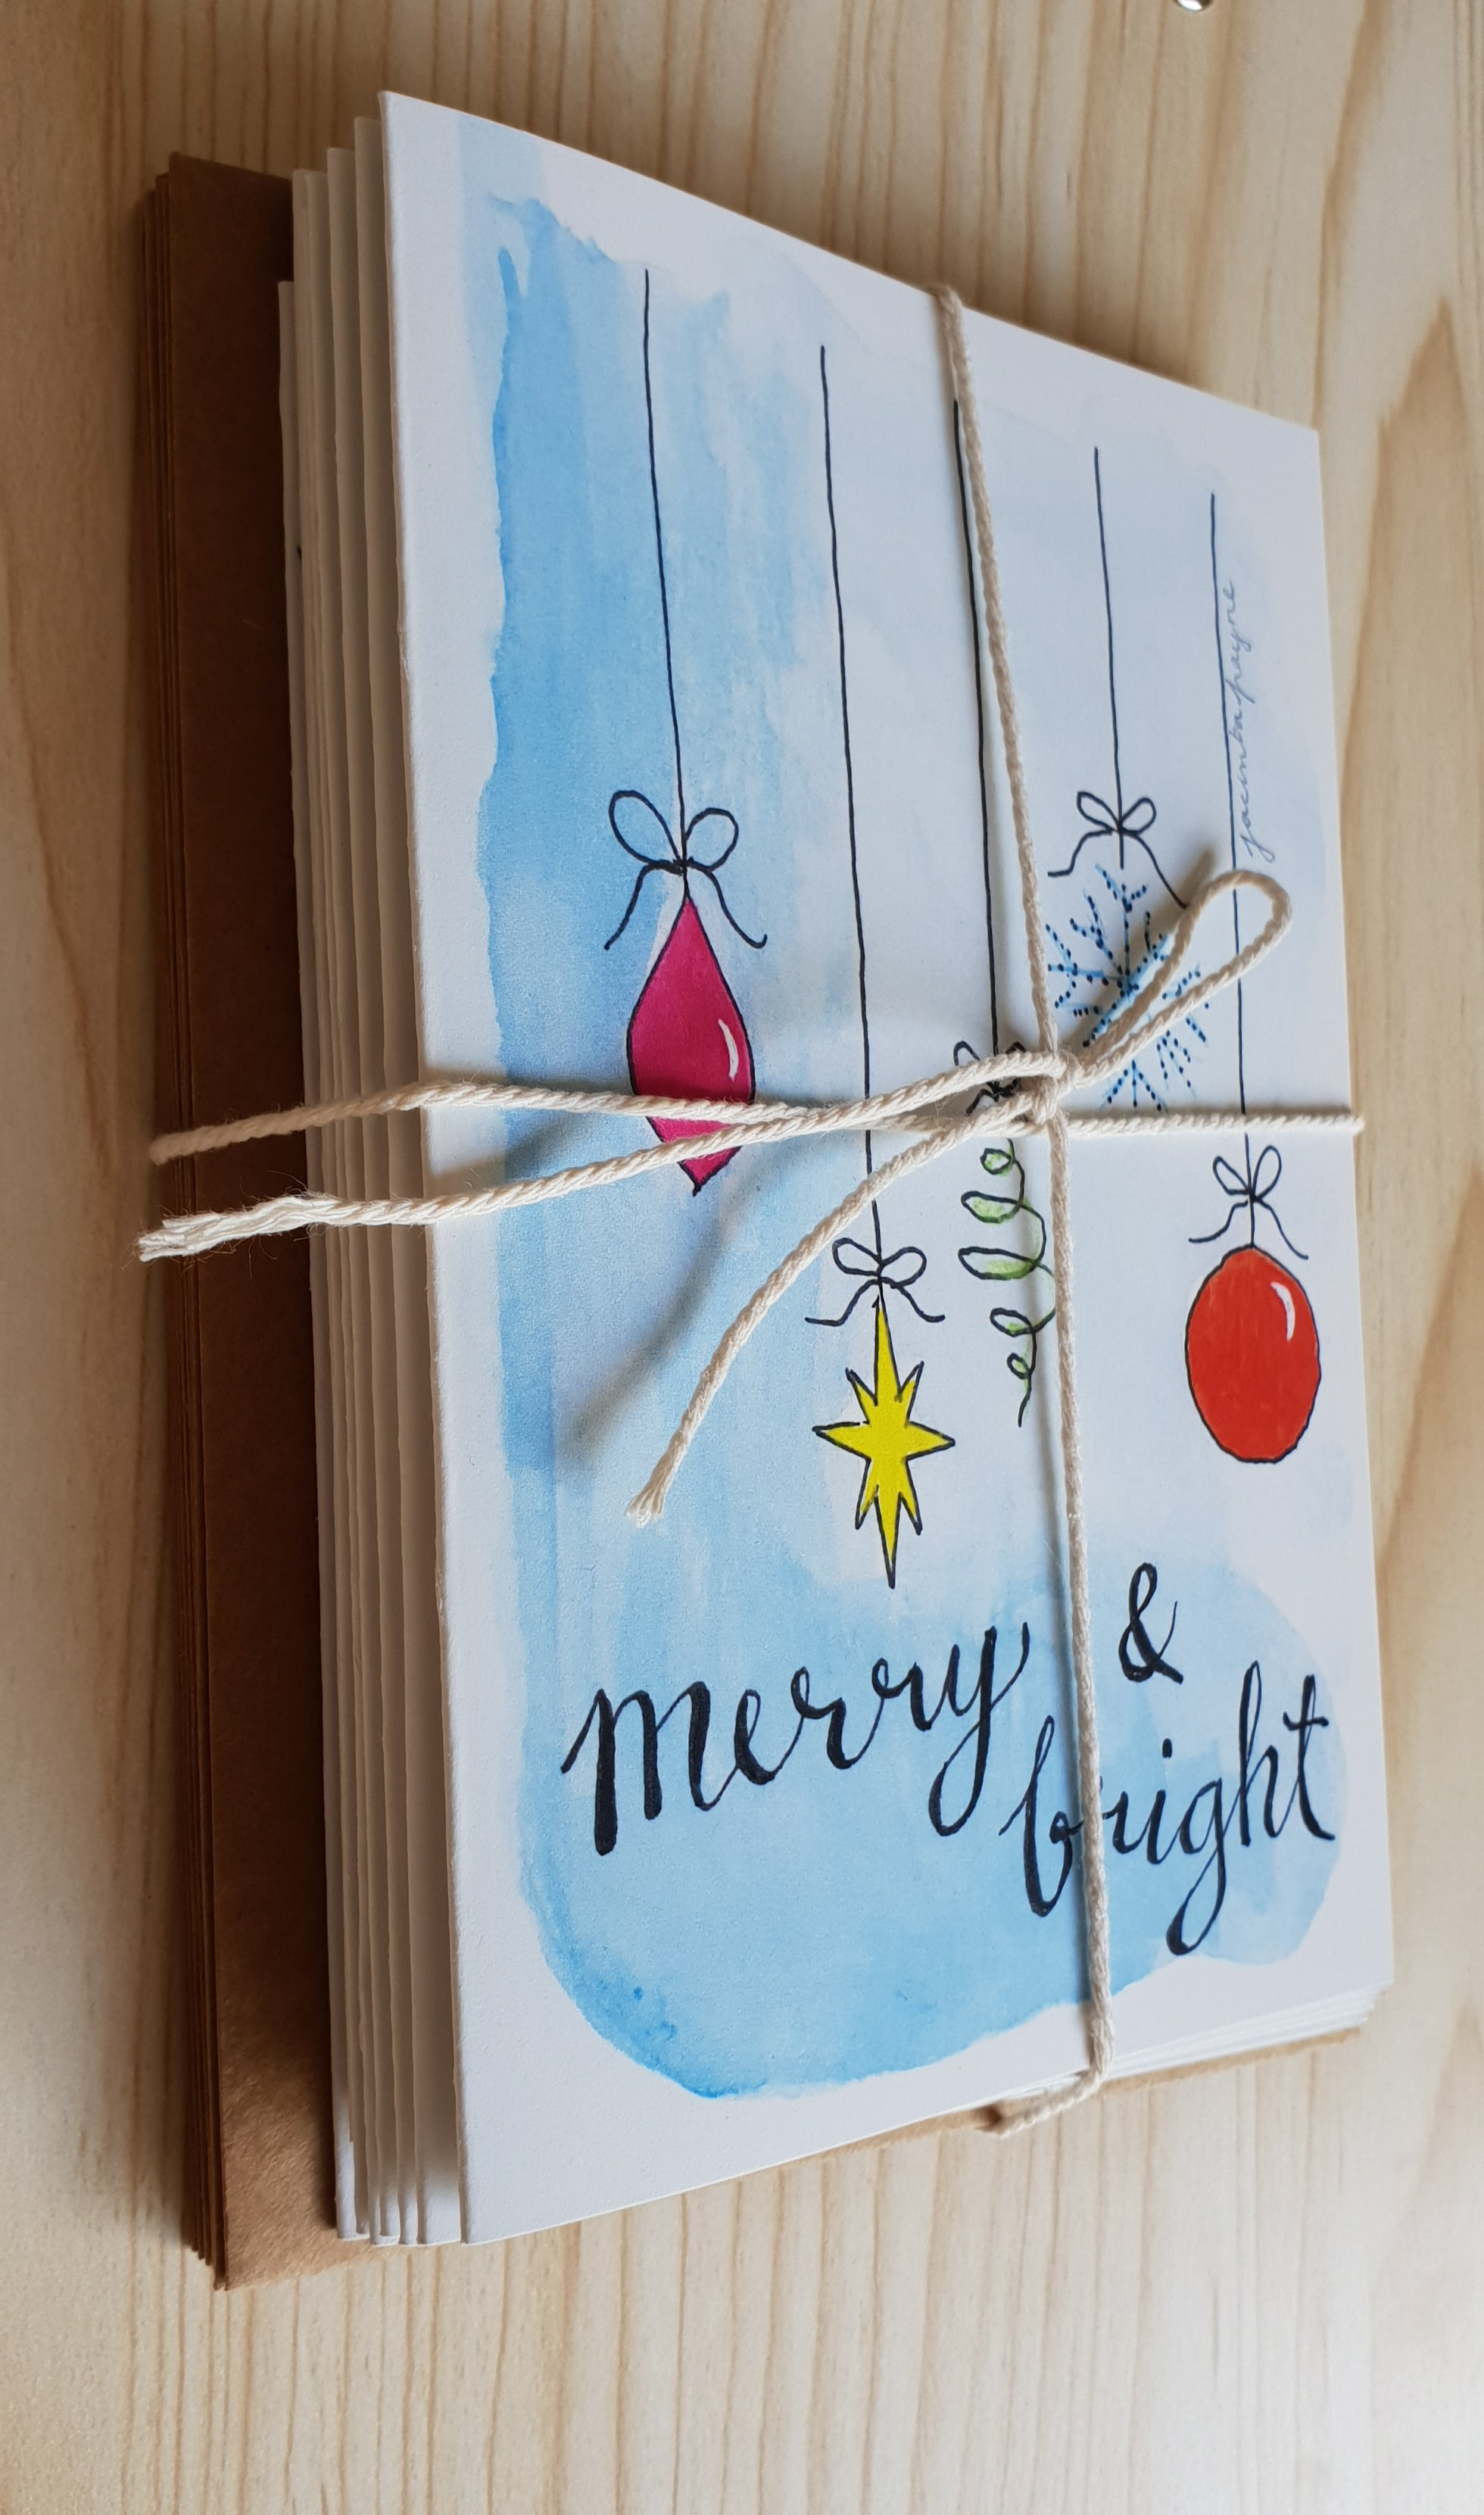 Christmas cards pack of 8 assorted Minnie&Lou designs in A6 size including envelopes